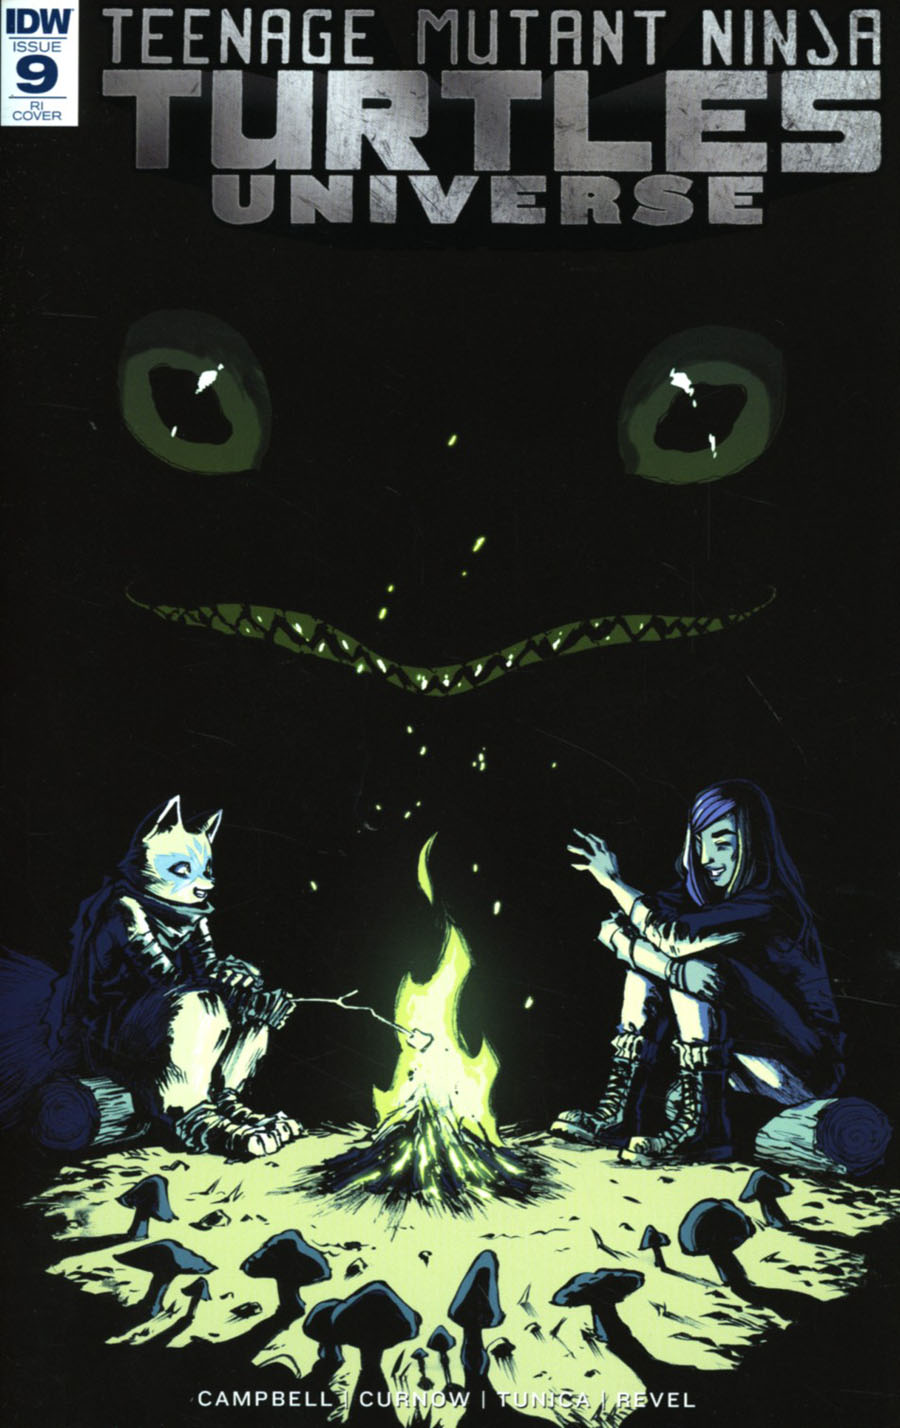 Teenage Mutant Ninja Turtles Universe #9 Cover C Incentive Sophie Campbell Variant Cover